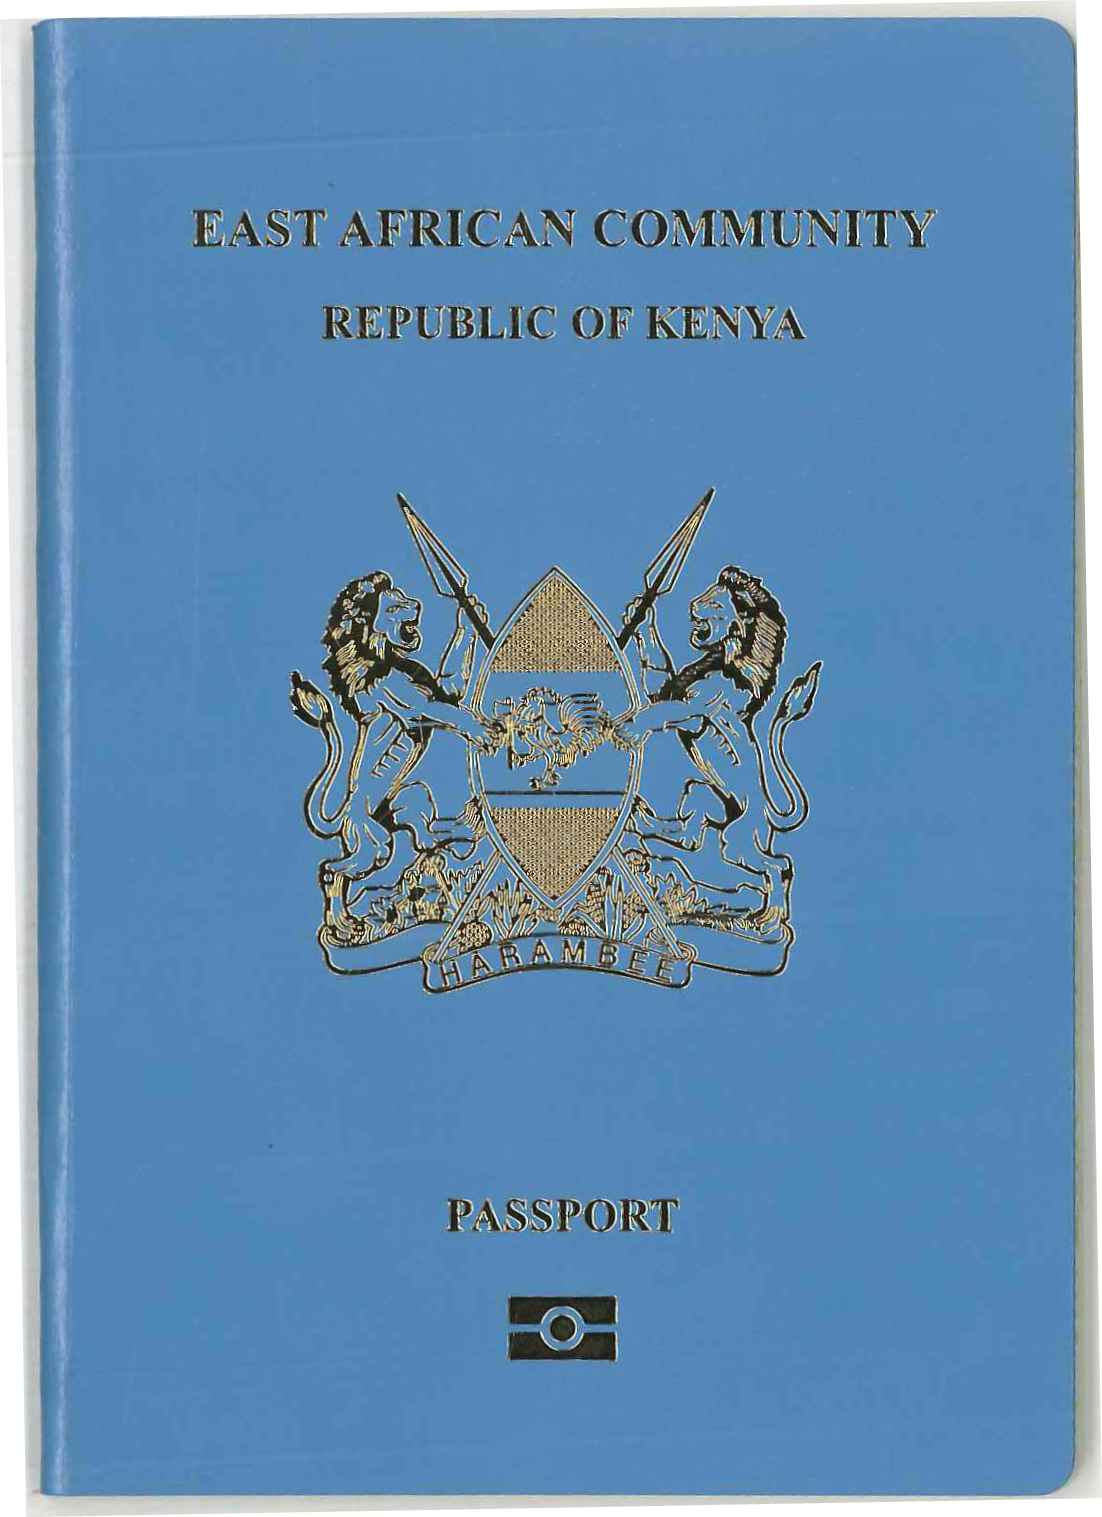 Kenyan Passport Wikipedia